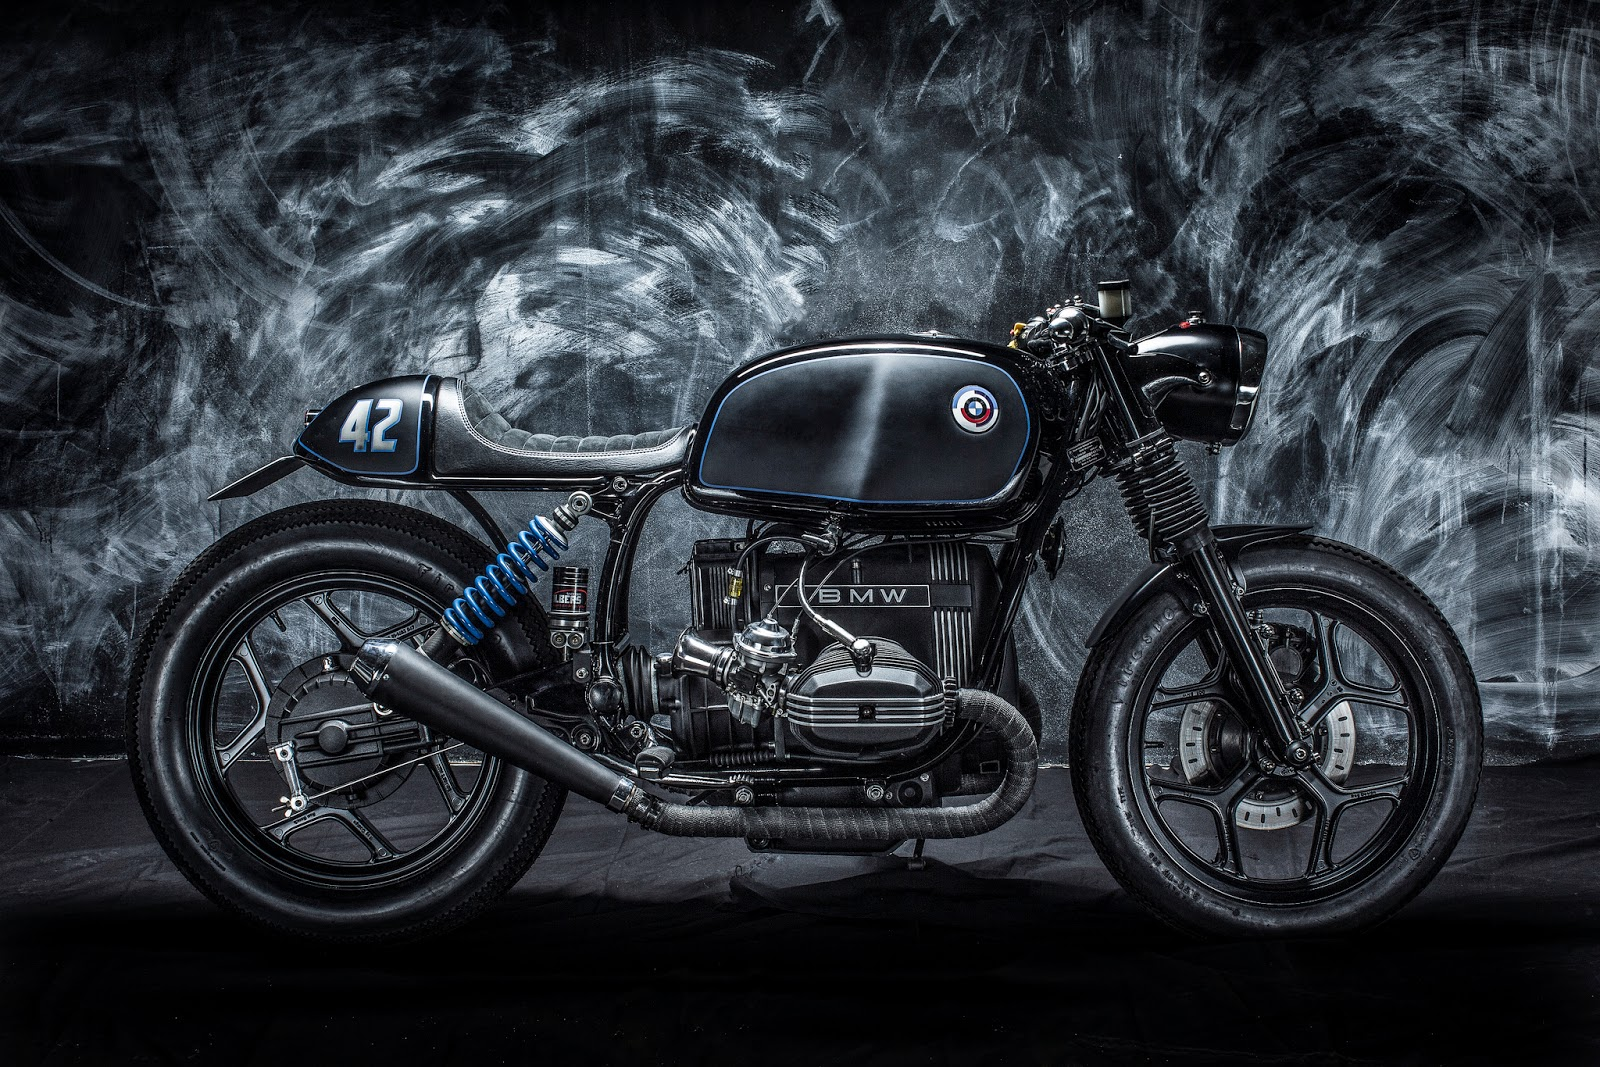 Connu BMW R65 Café Racer - RocketGarage - Cafe Racer Magazine AH87